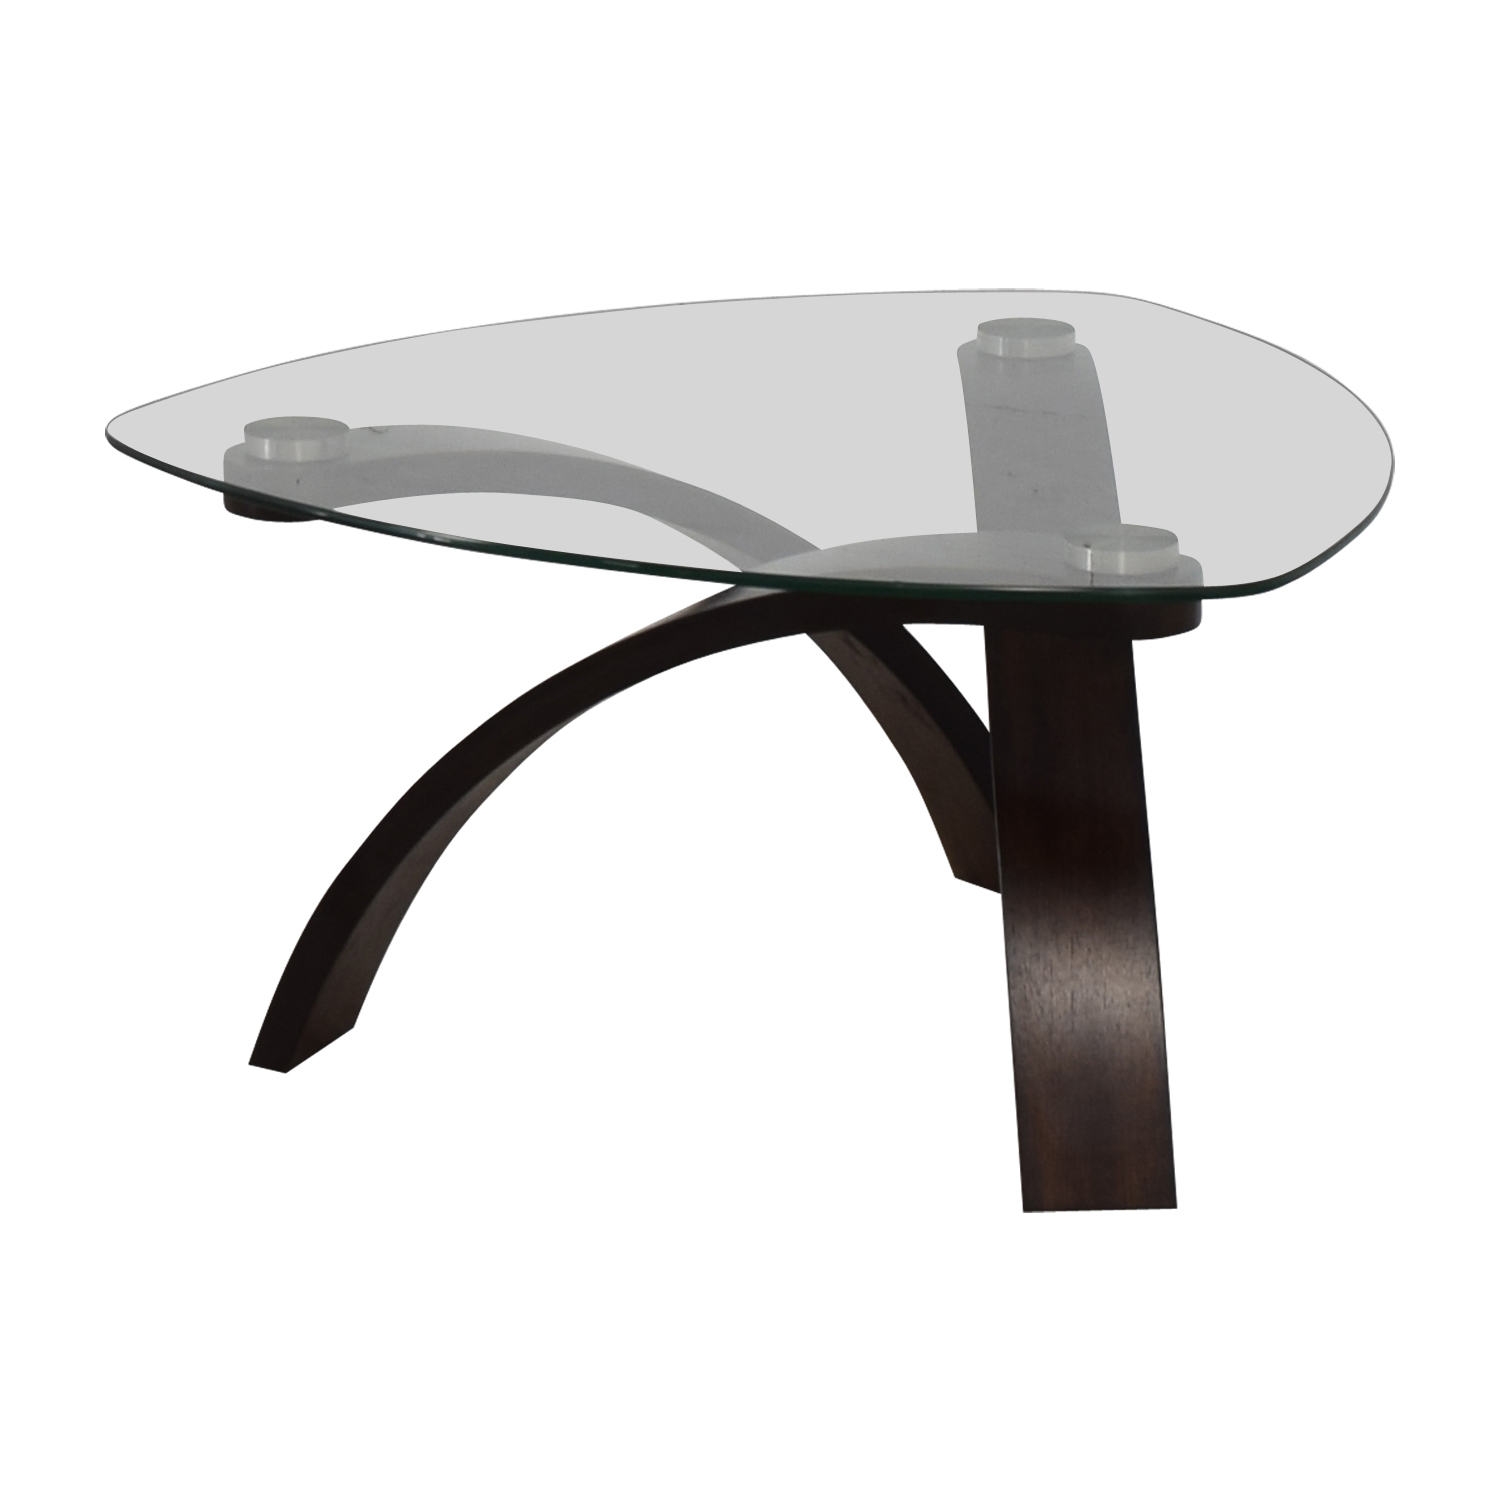 Raymour & Flanigan Raymour & Flanigan Allure Glass Coffee Table price